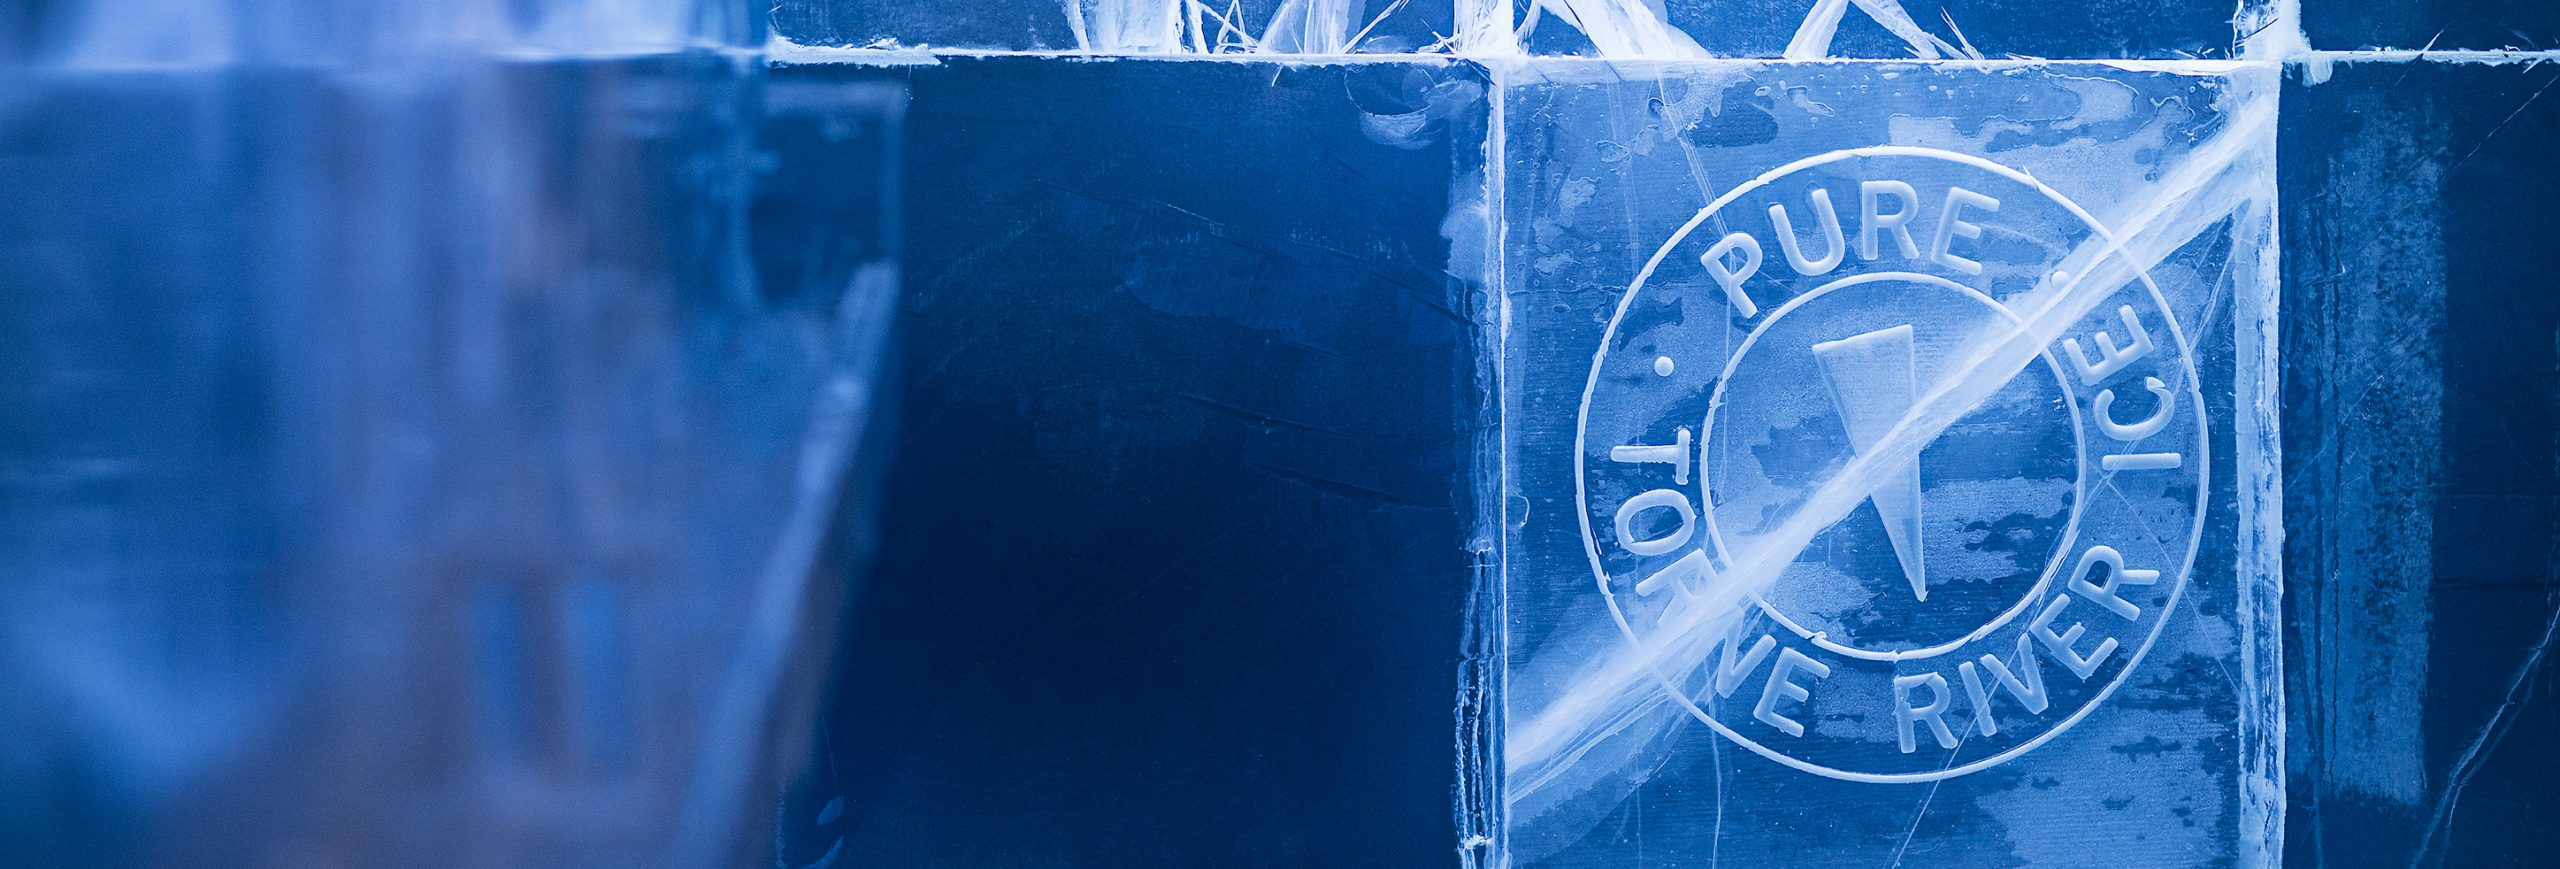 Ice Hotel - Gifts for Card Players